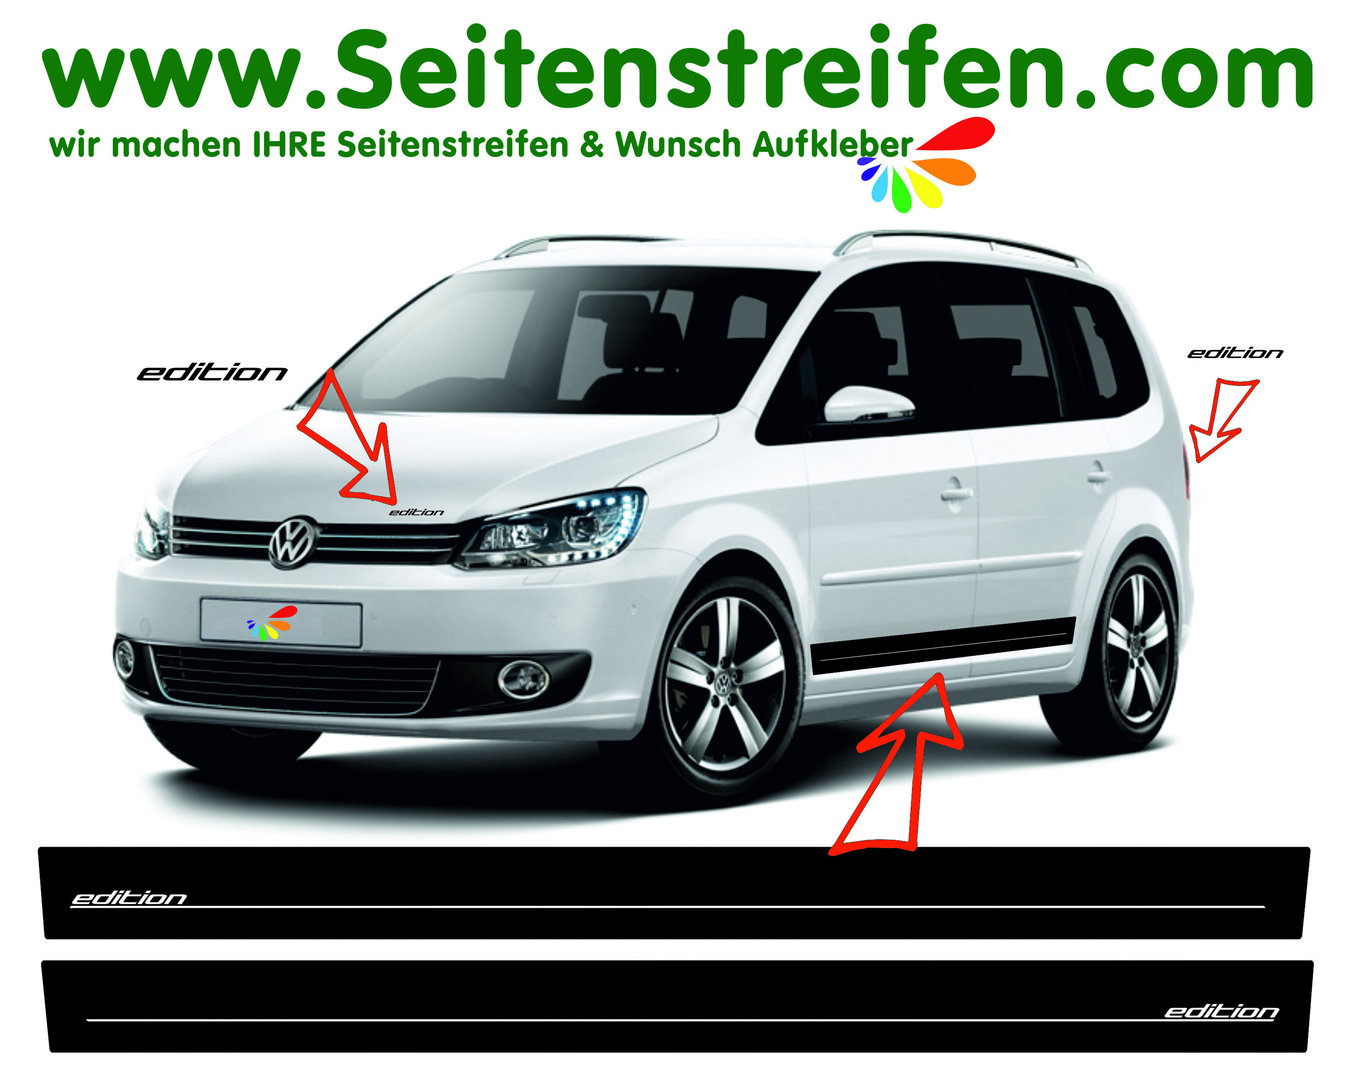 VW Touran - Edition - Side Stripes Graphics Decals Sticker Kit - N° 5776